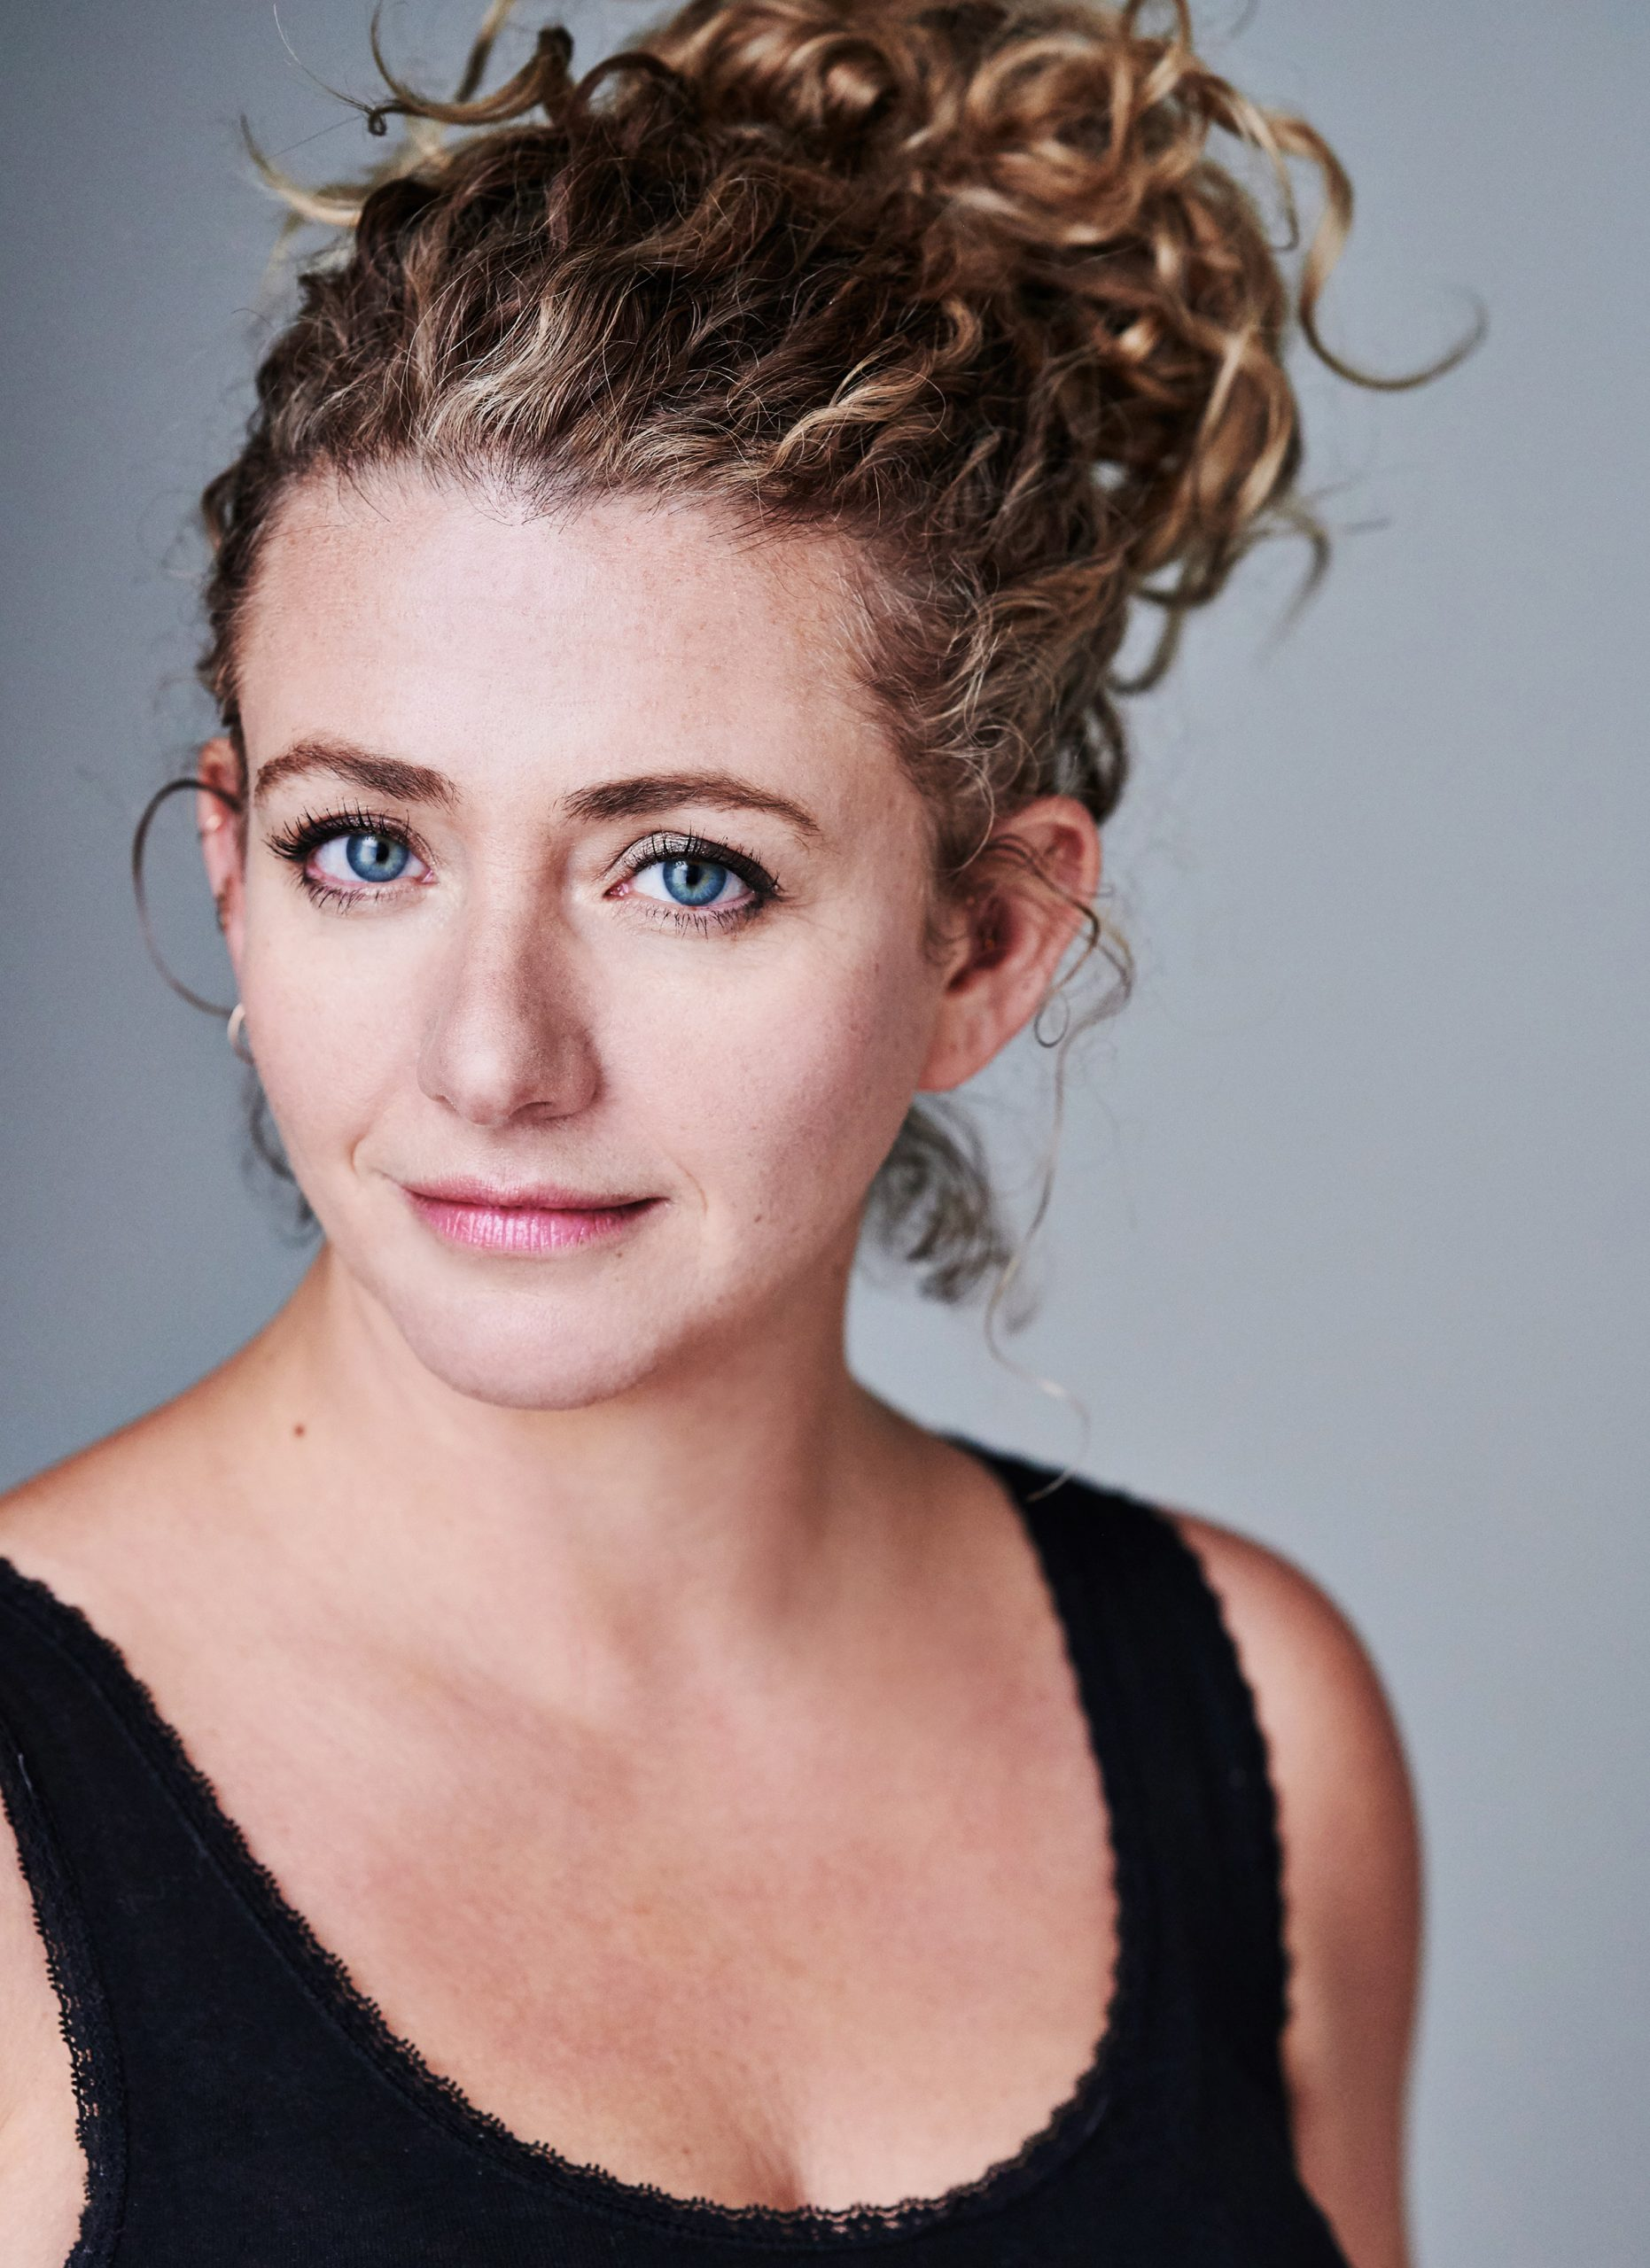 Louisa Clein - InterTalent Rights Group